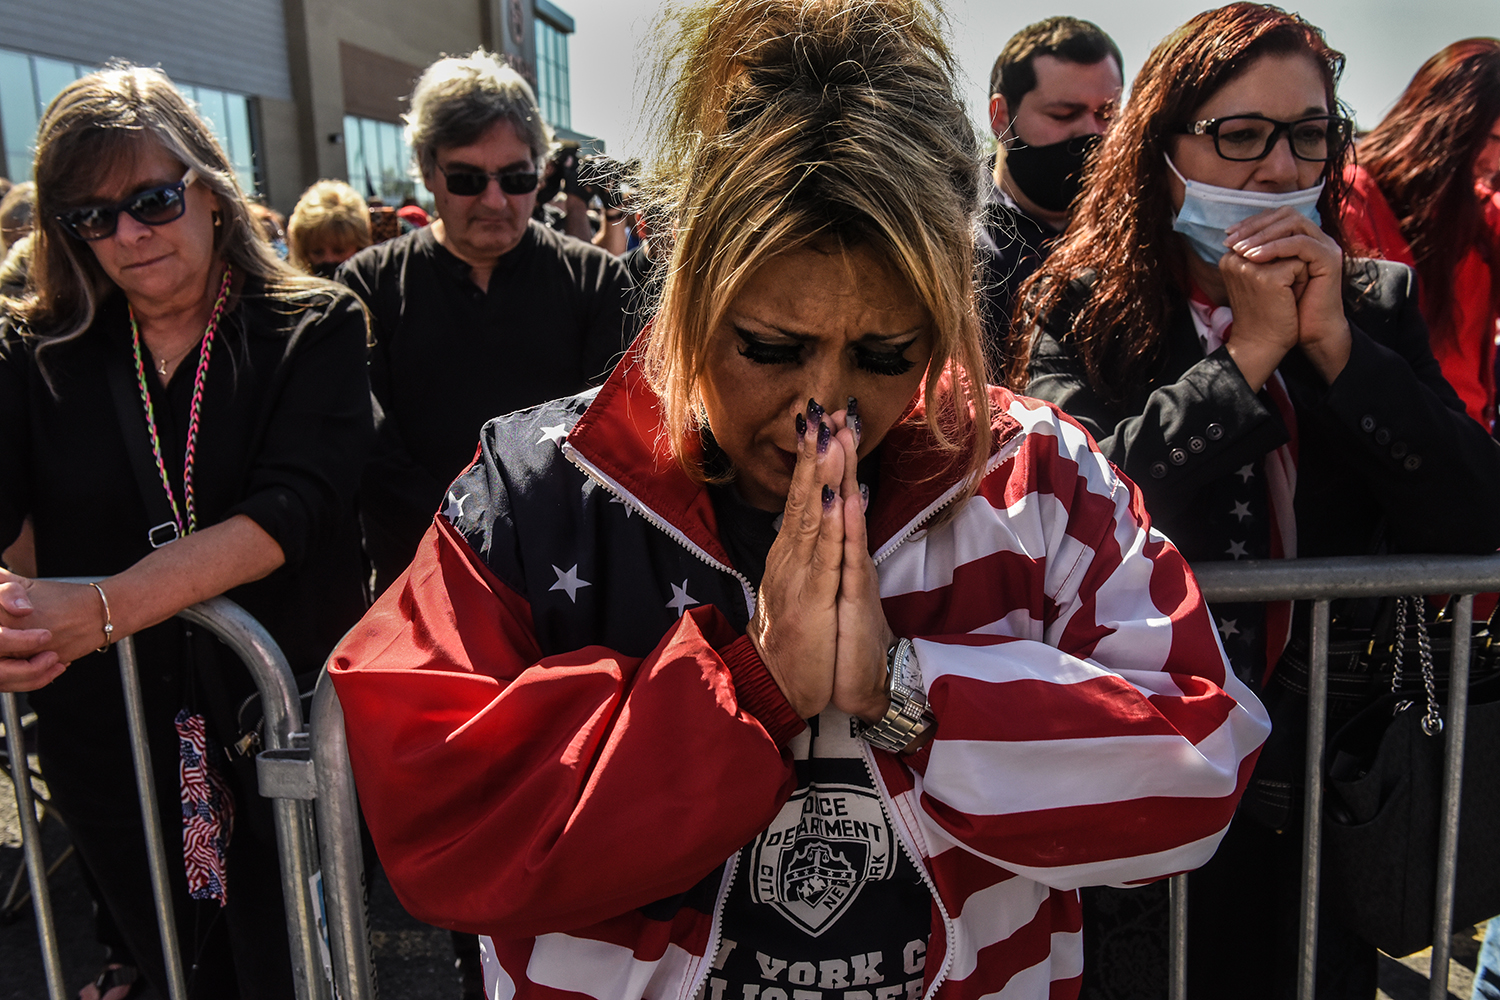 Daniela Taormina prays during a pro-Trump rally in the Staten Island borough of New York City on Oct. 3 after news that the president had fallen ill with COVID-19. Stephanie Keith/Getty Images